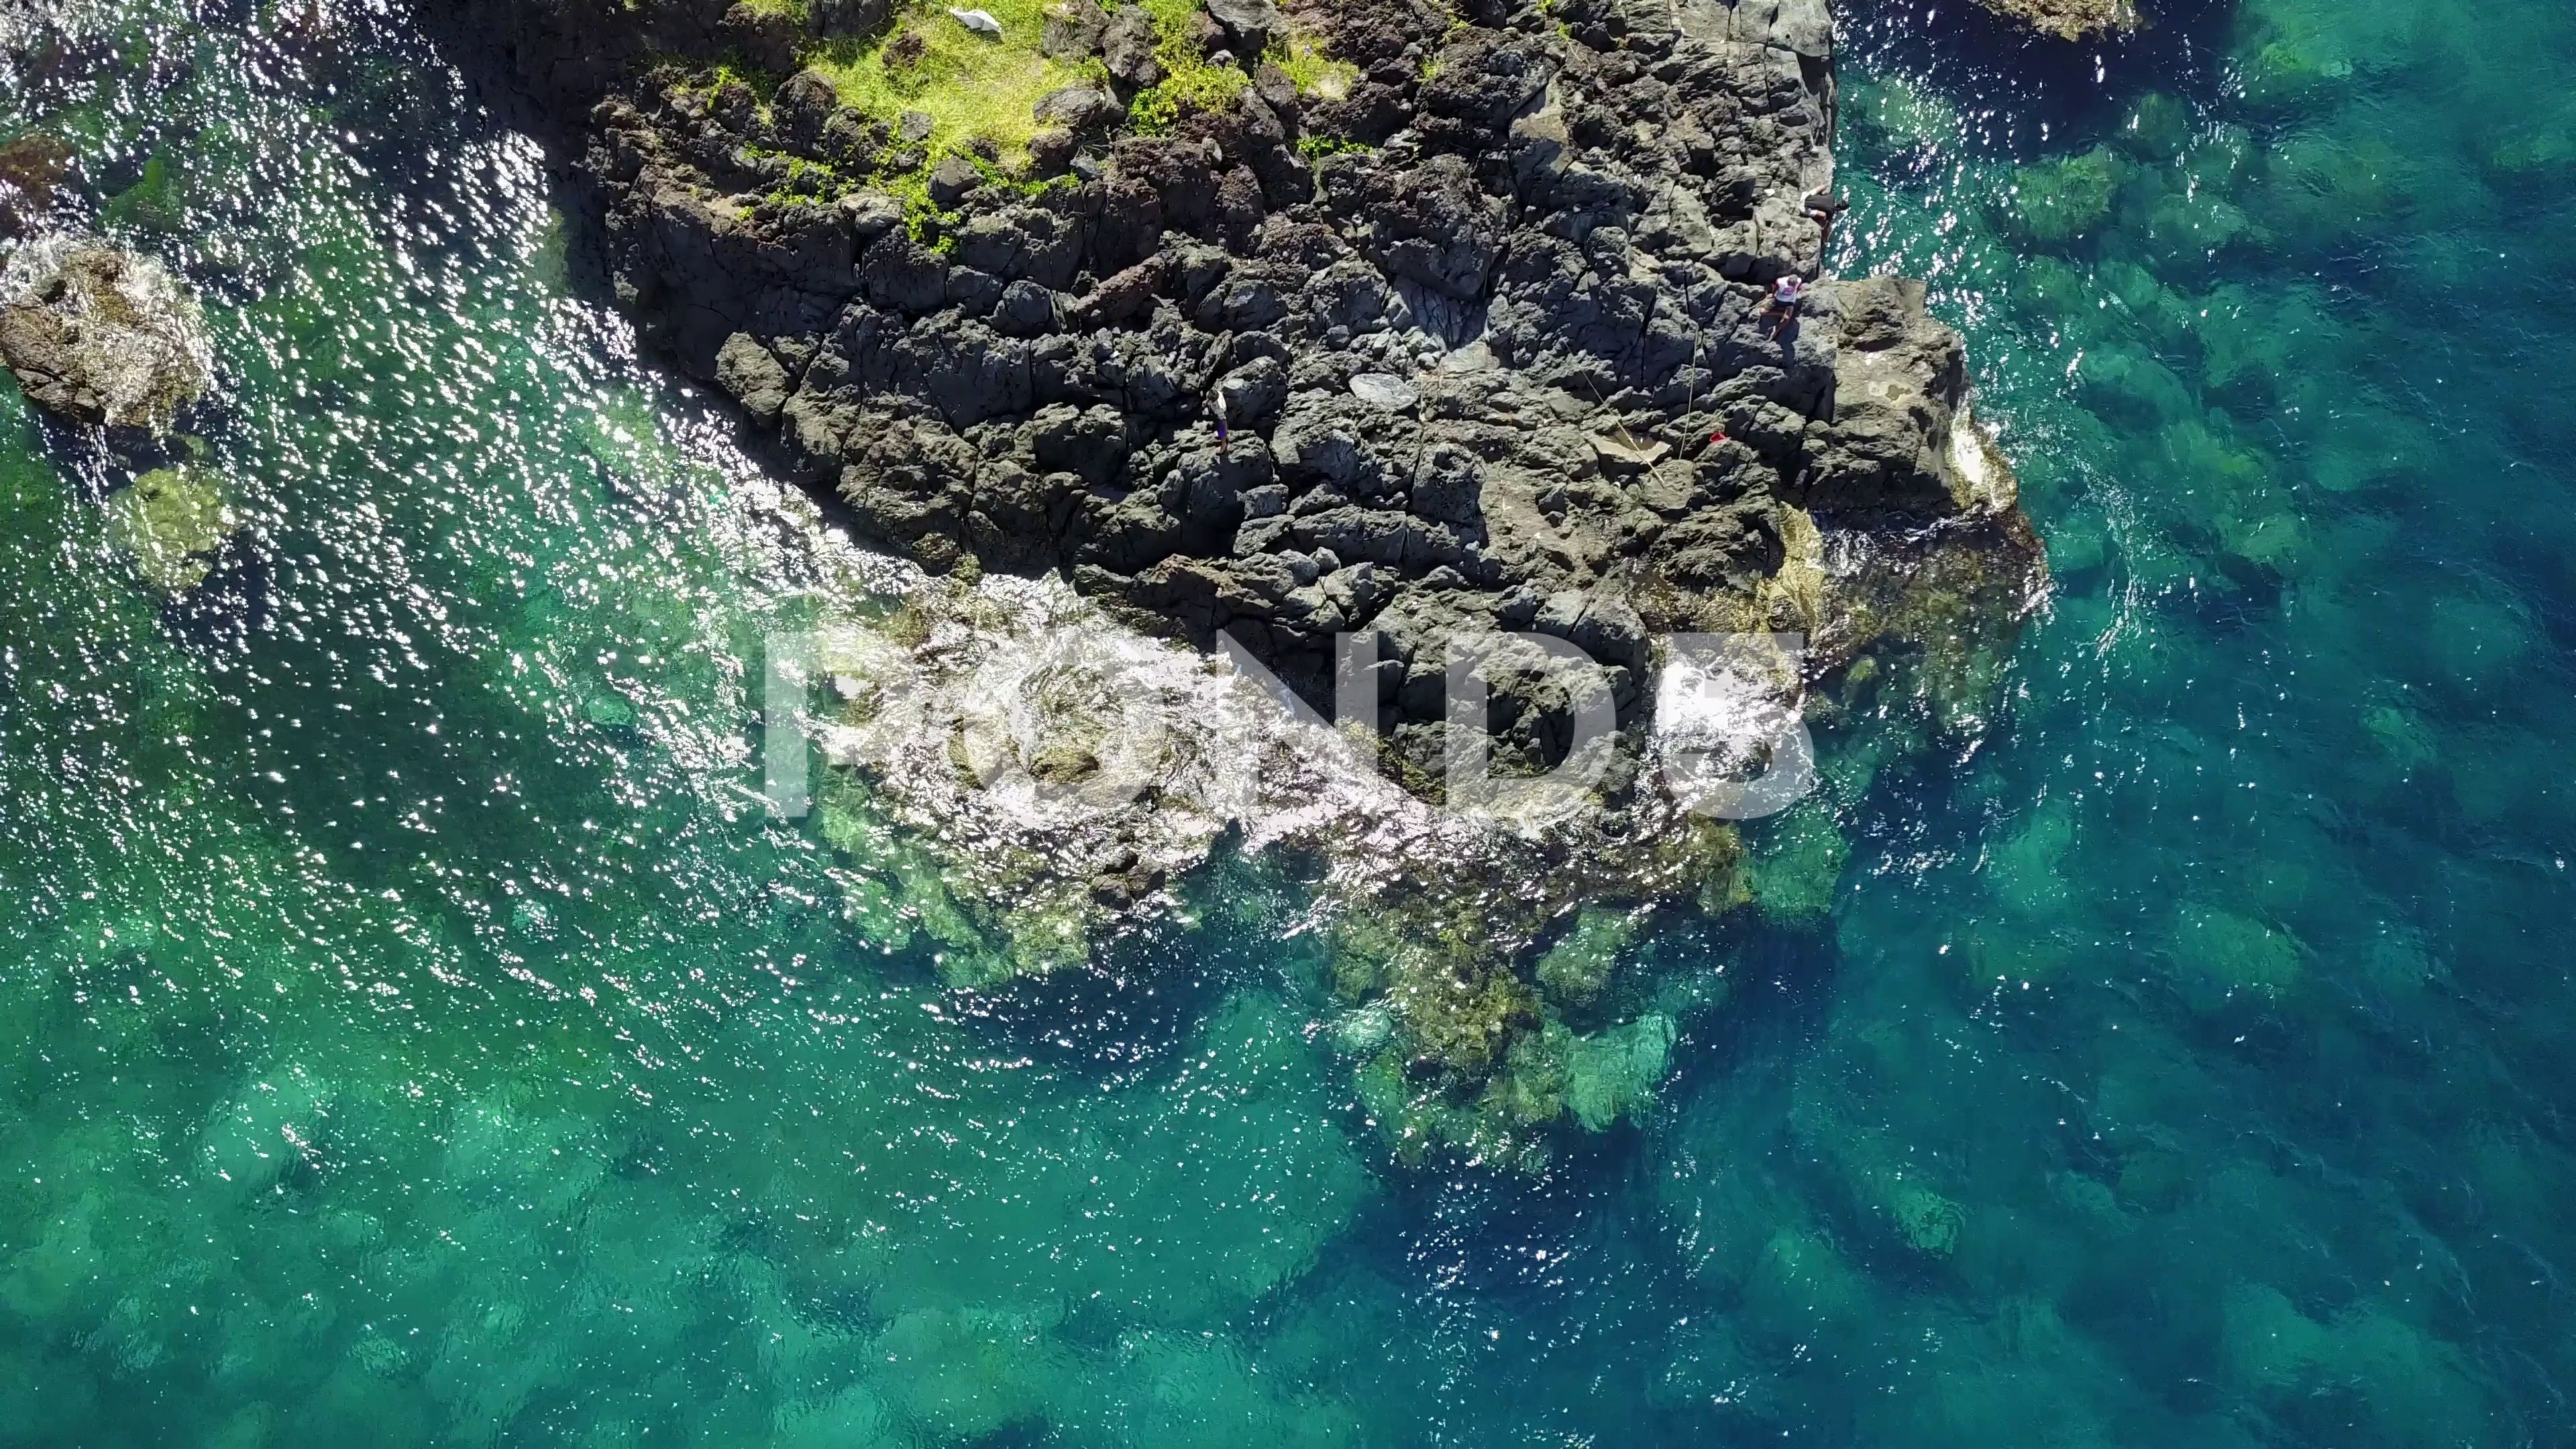 Ocean and Stones  Wide and Close View  Bali 2 Stock Footage WideCloseOceanStones